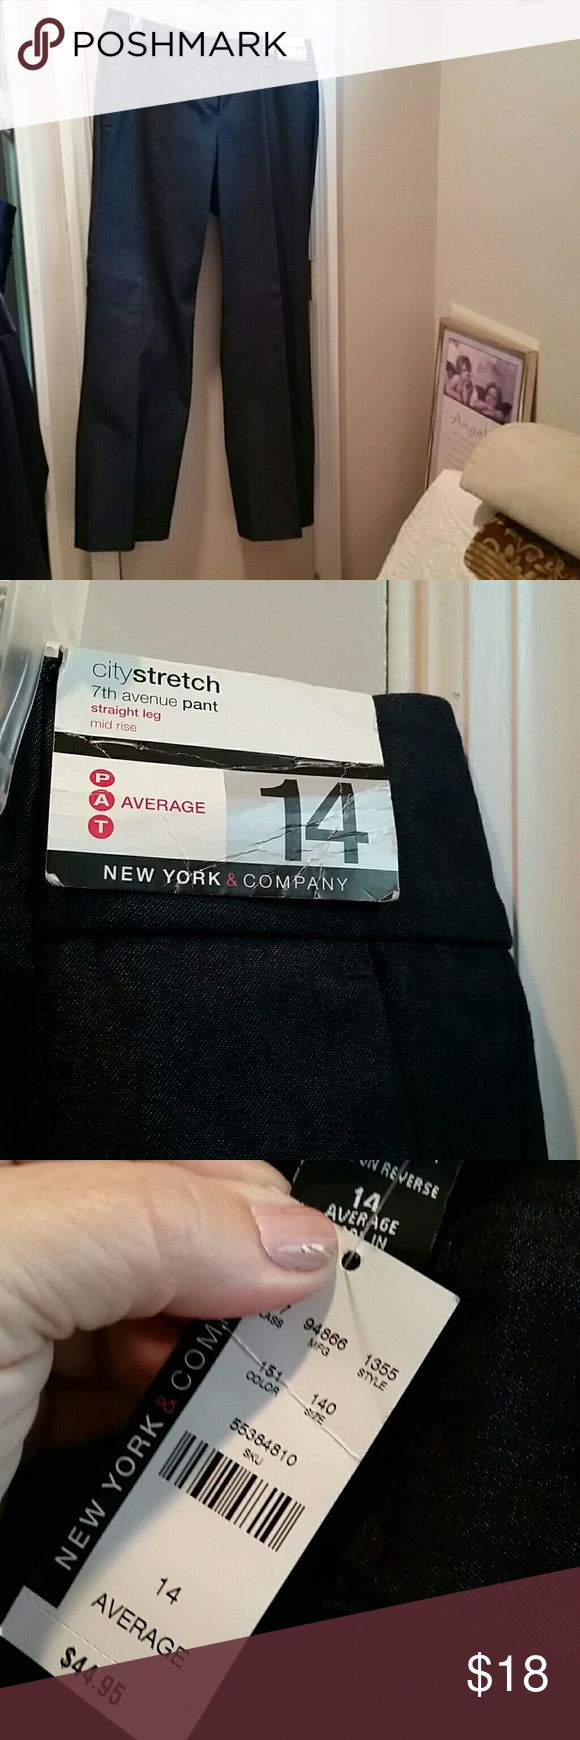 NY & Co. 7th Avenue Stretch Leg Denim Pants These are midrise, cotton/polyester/spandex pants/jeans.  They are perfect for office attaire or casual wear and an average size 14. New York & Company Jeans Straight Leg